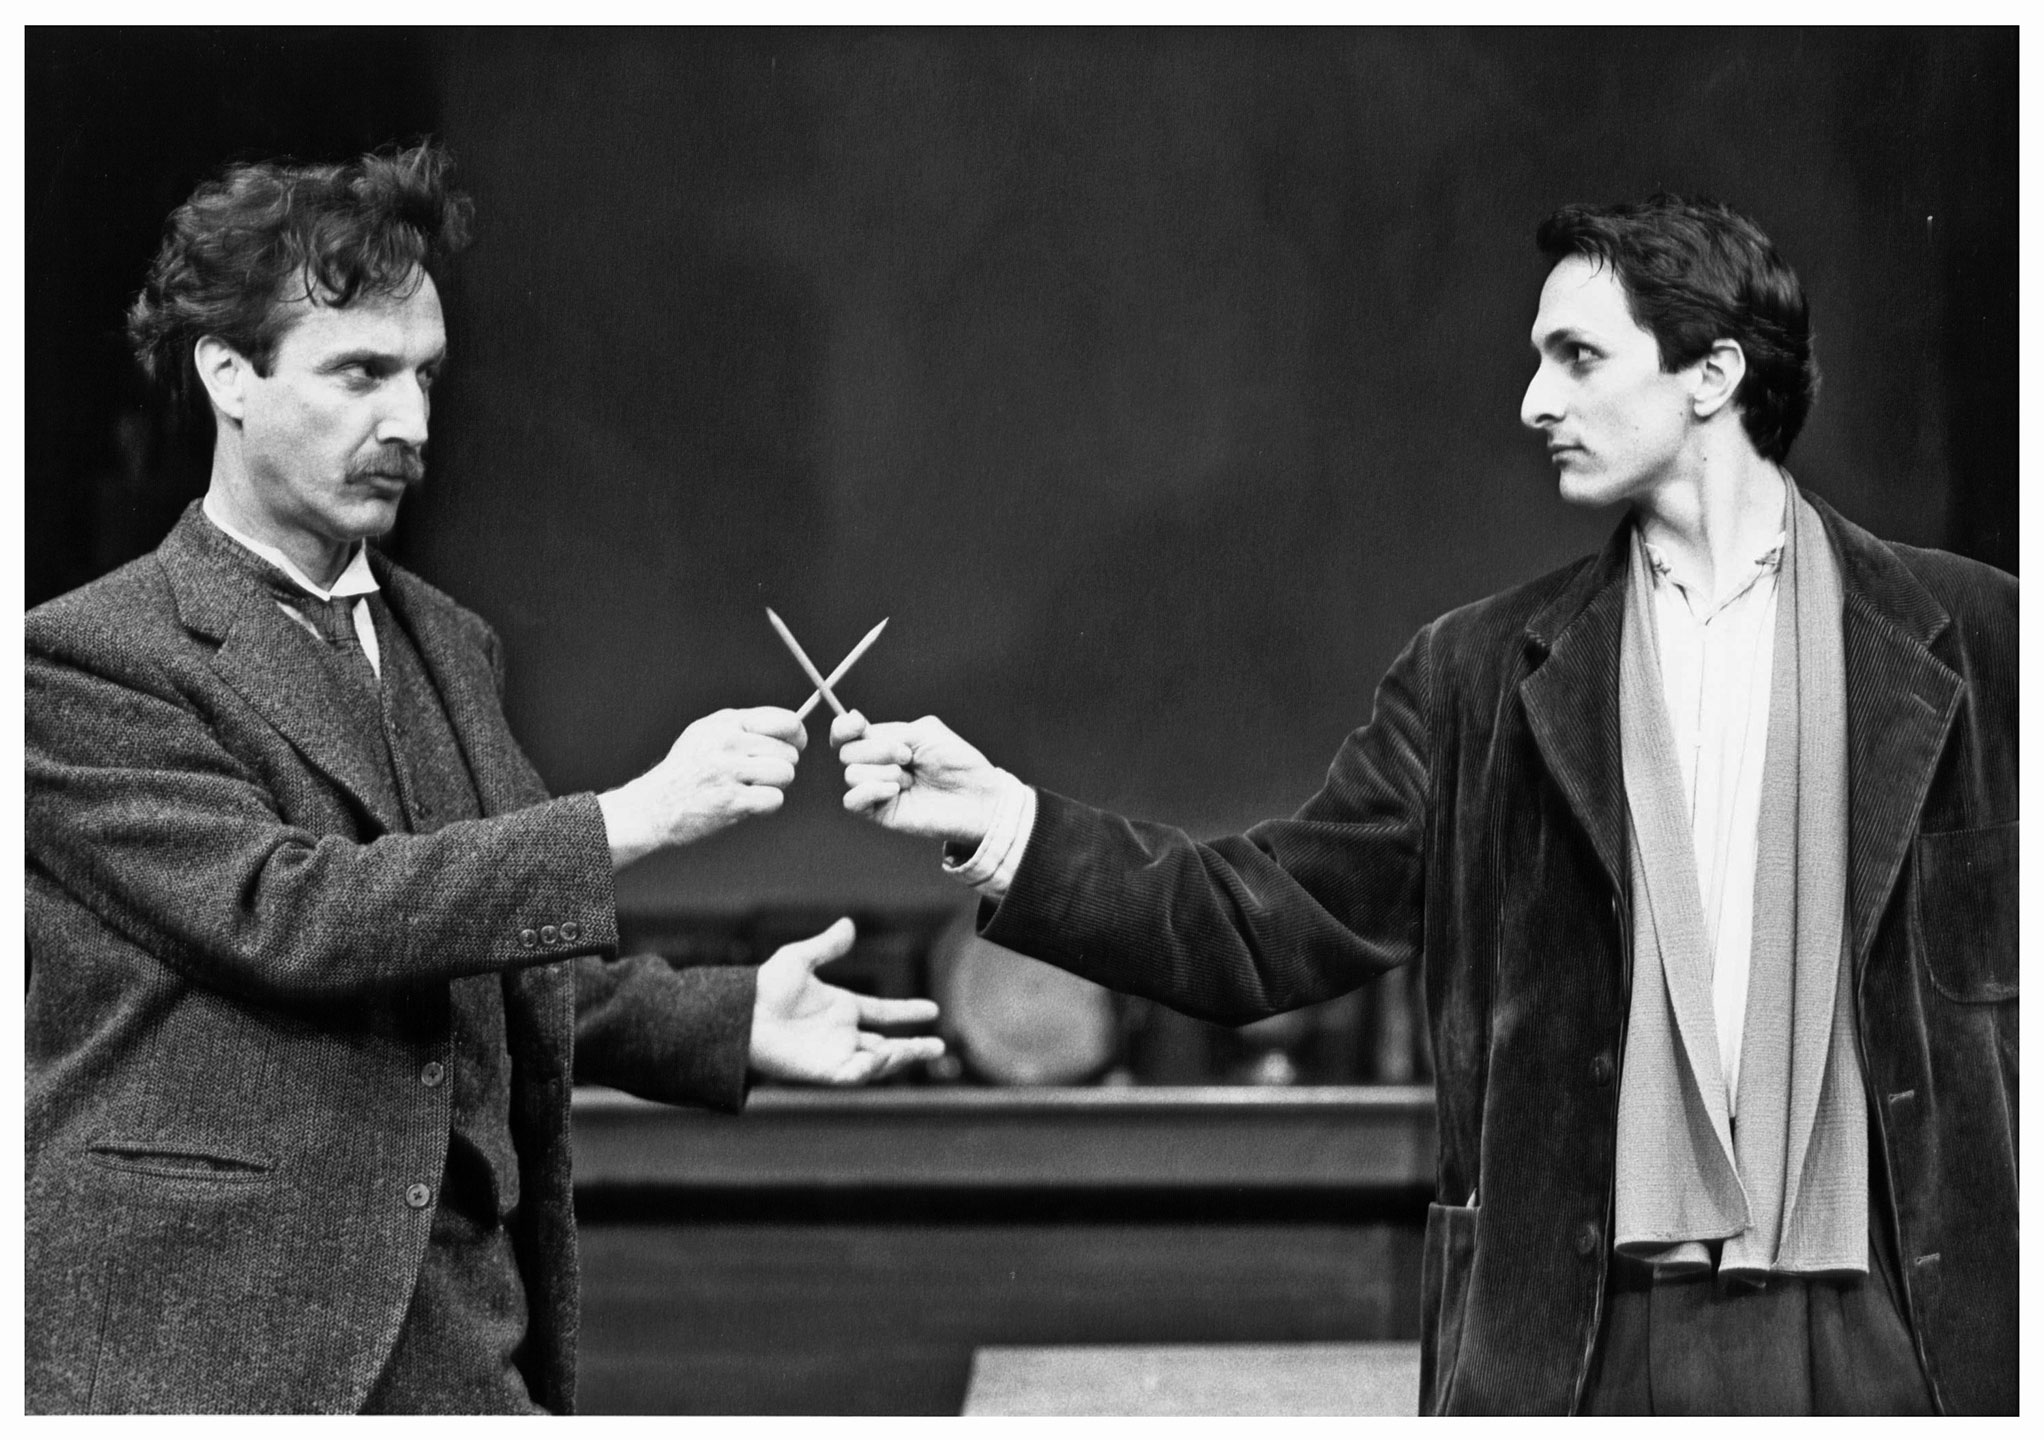 Two male actors portraying Picasso (Dan Hiatt) and Einstein (James Asher) on stage at Ford's Theatre. The two are performing in a production of the play Picasso at the Lapin Agile, my Steve Martin.